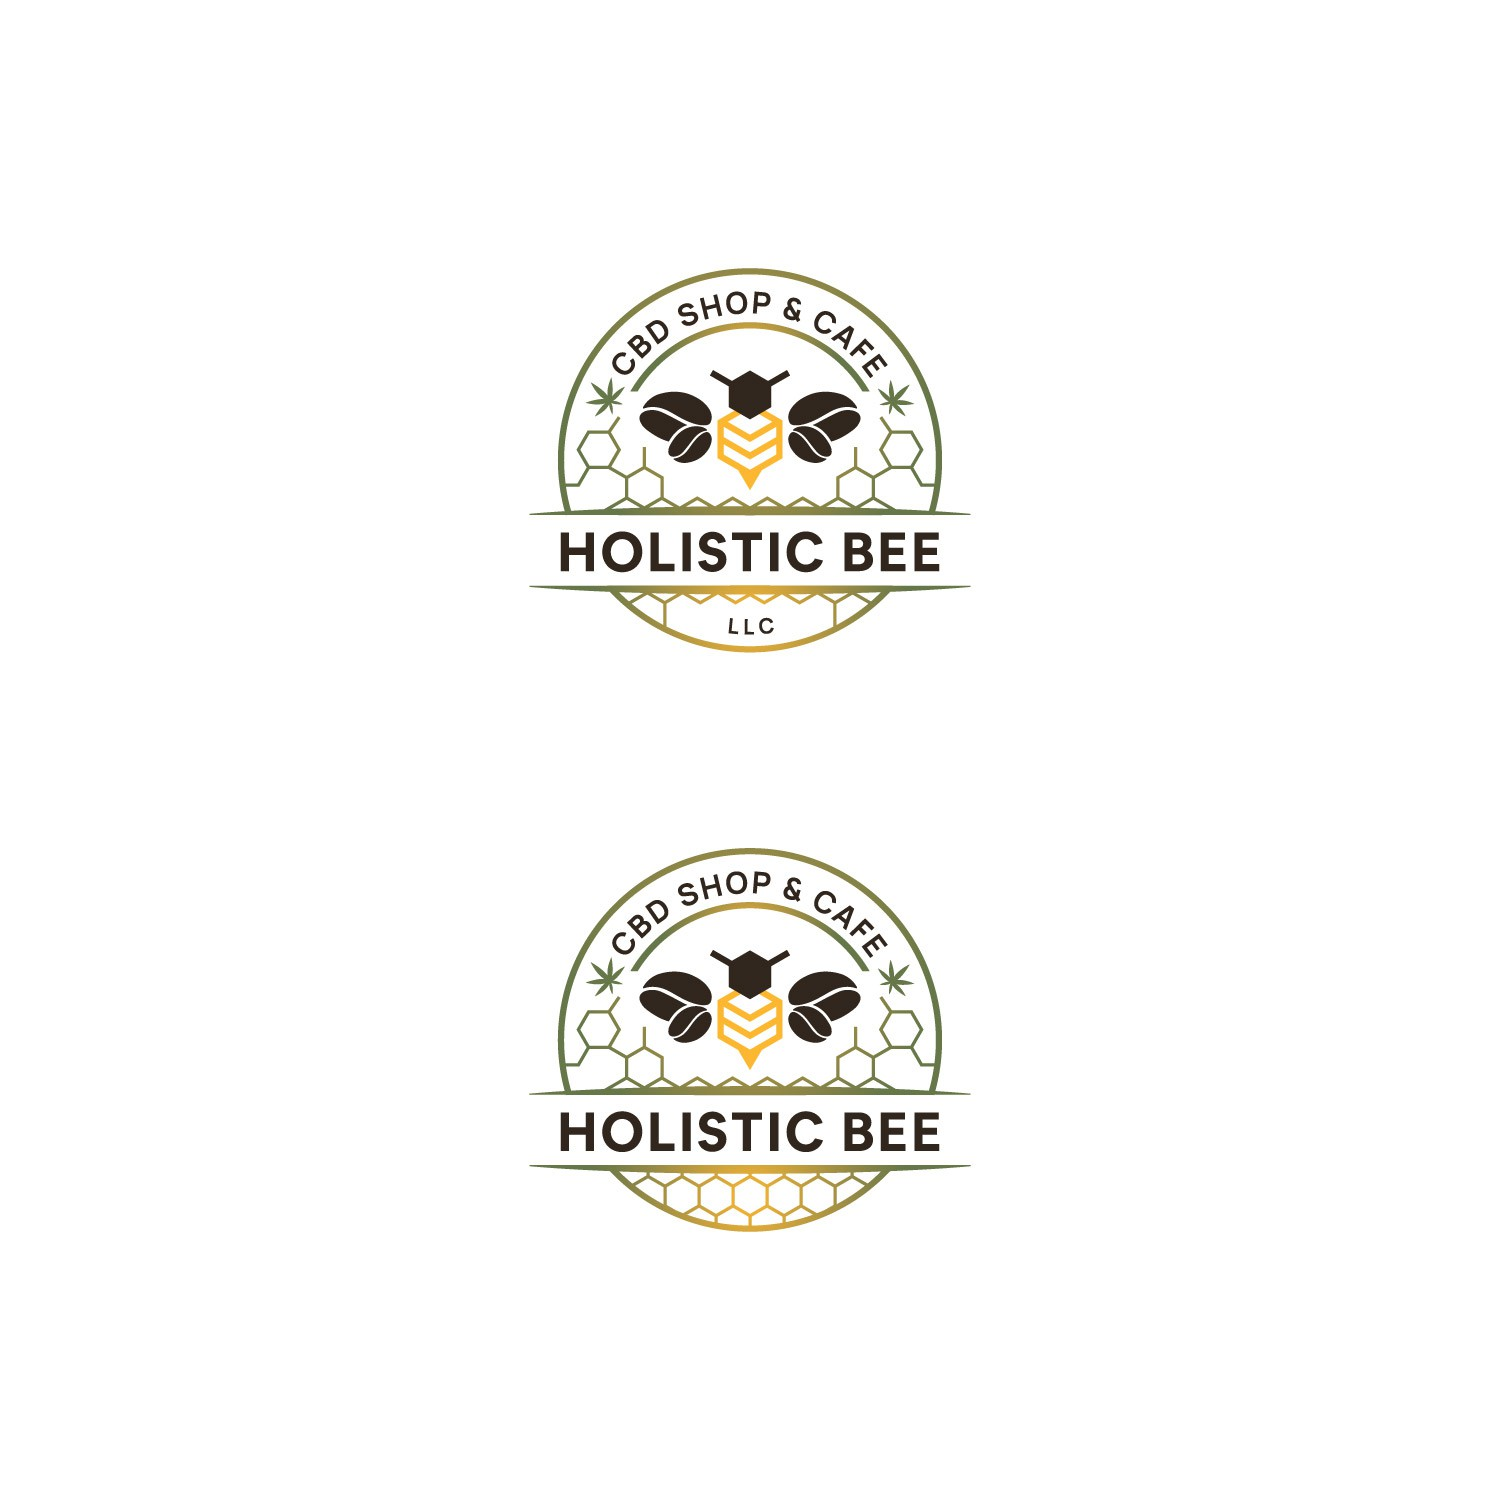 Attractive CBD logo that exudes a standard of health and well being